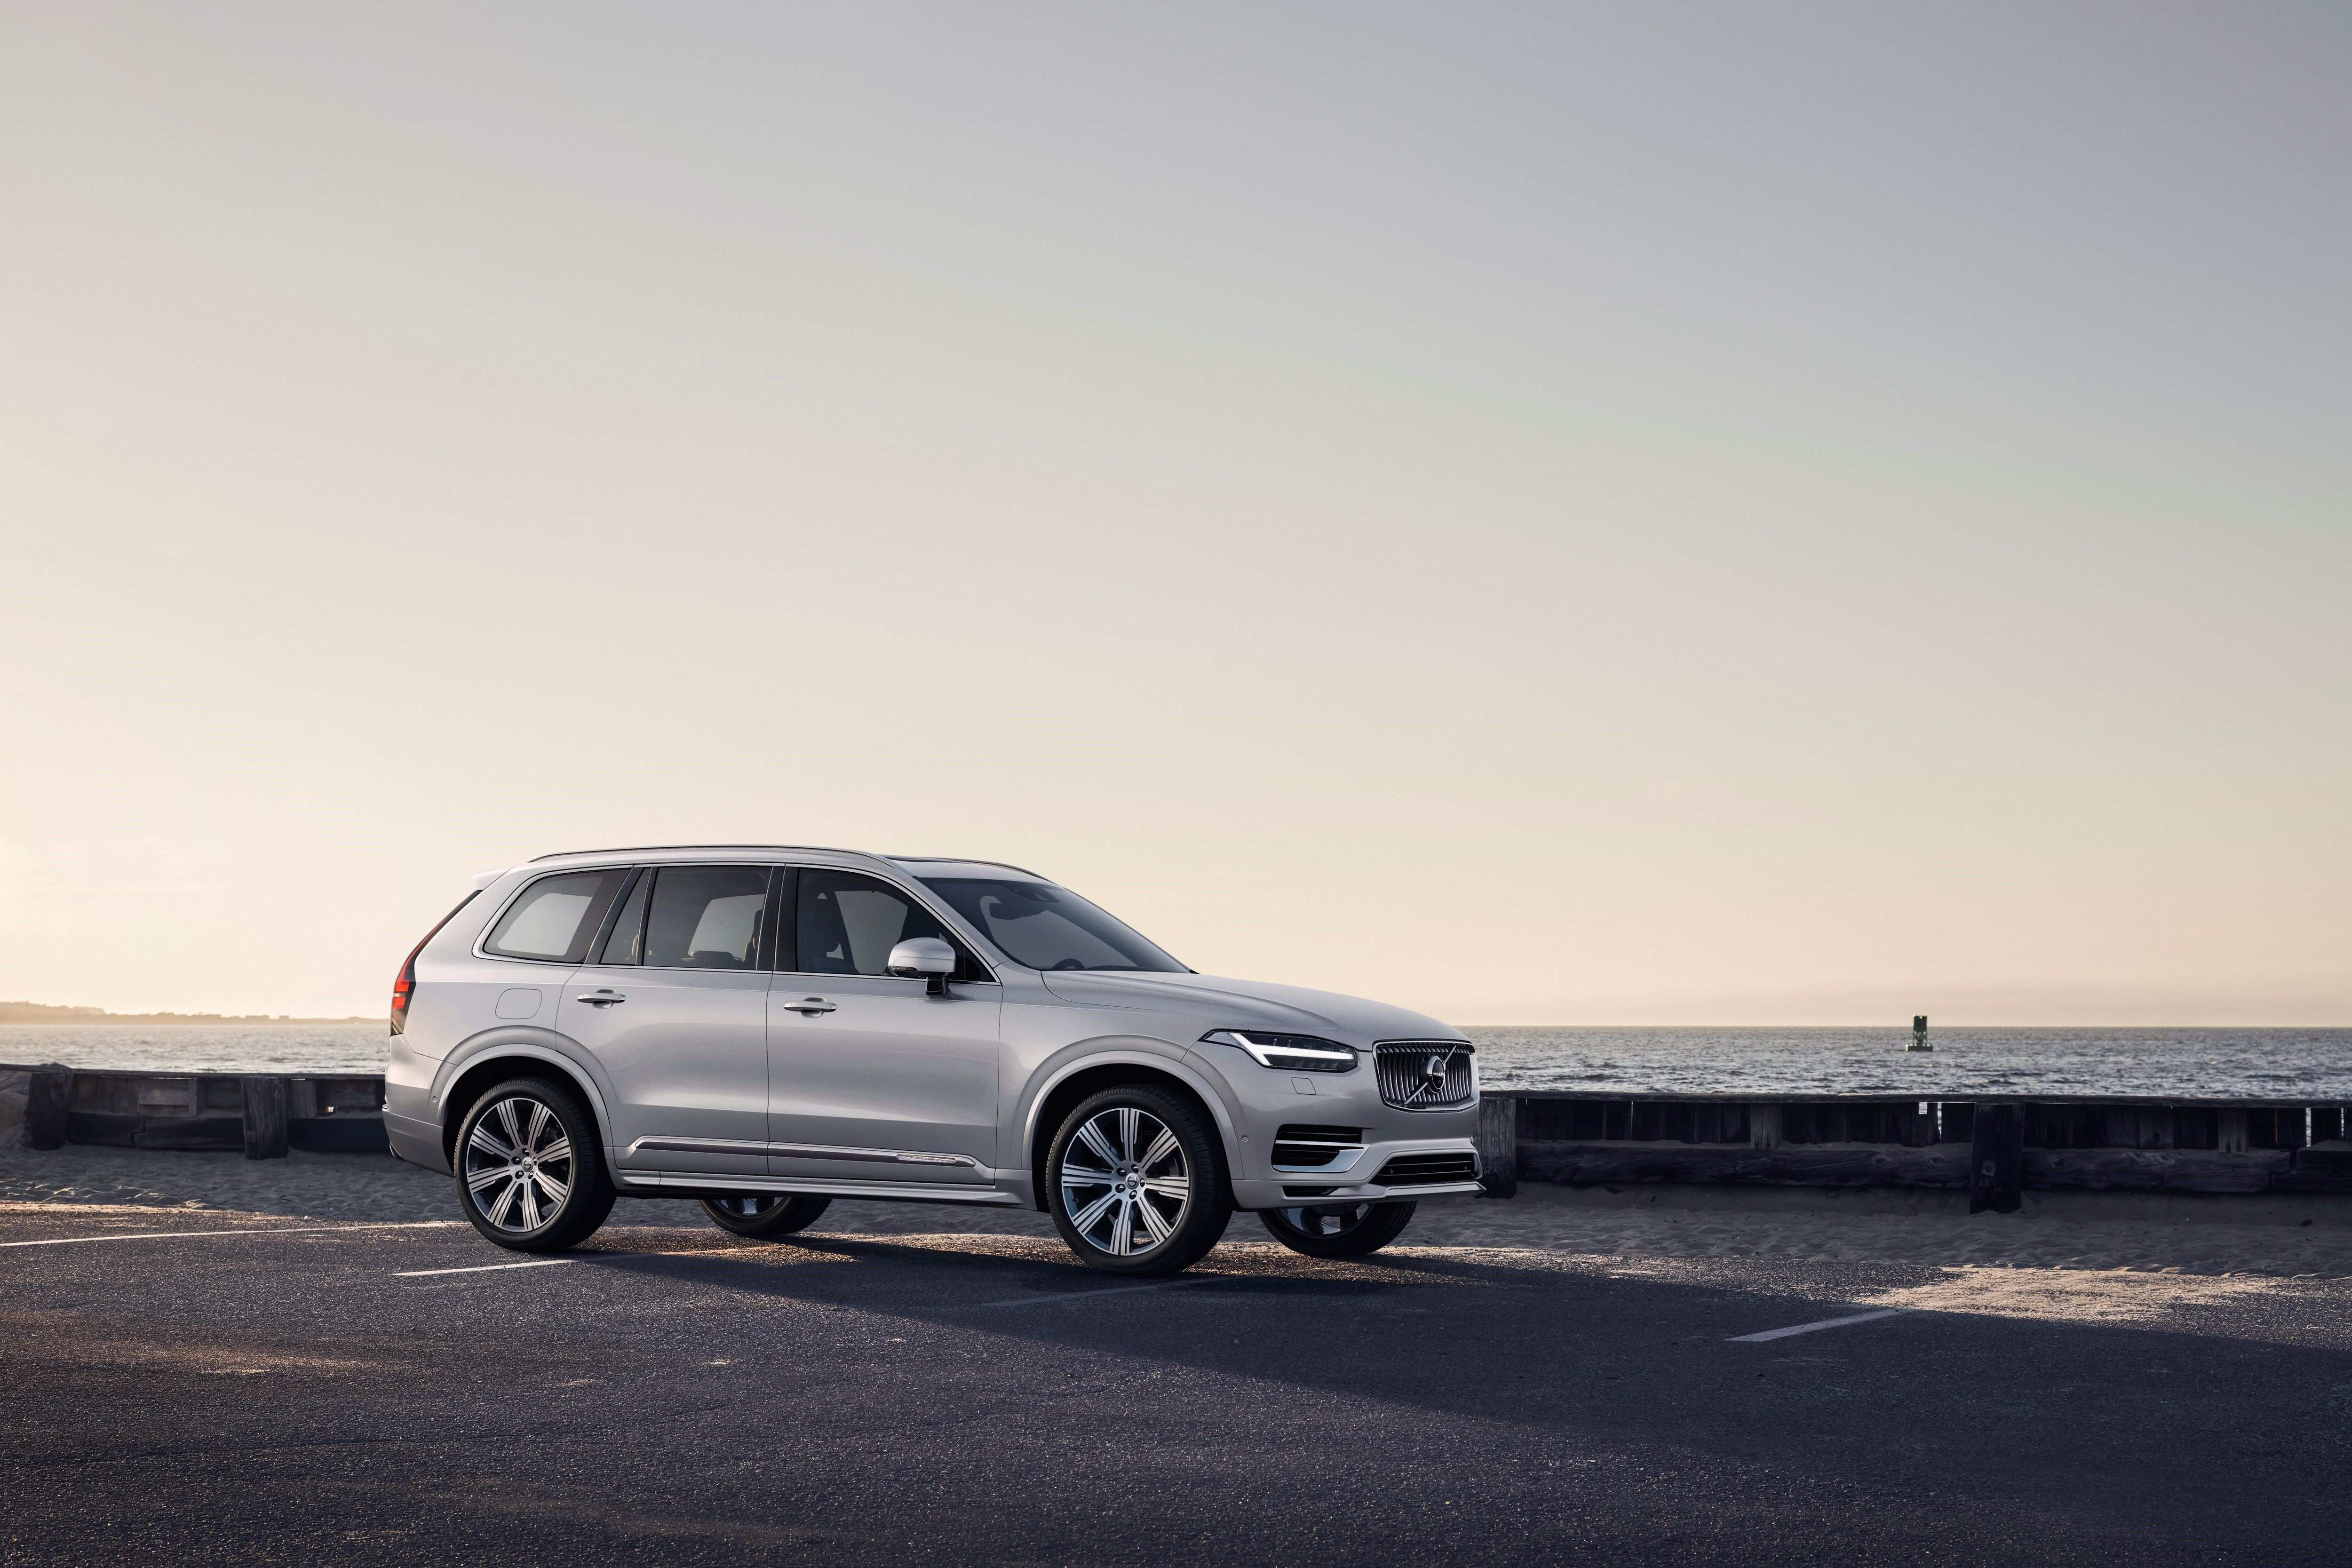 67 All New Volvo Xc90 Model Year 2020 Release Date And Concept